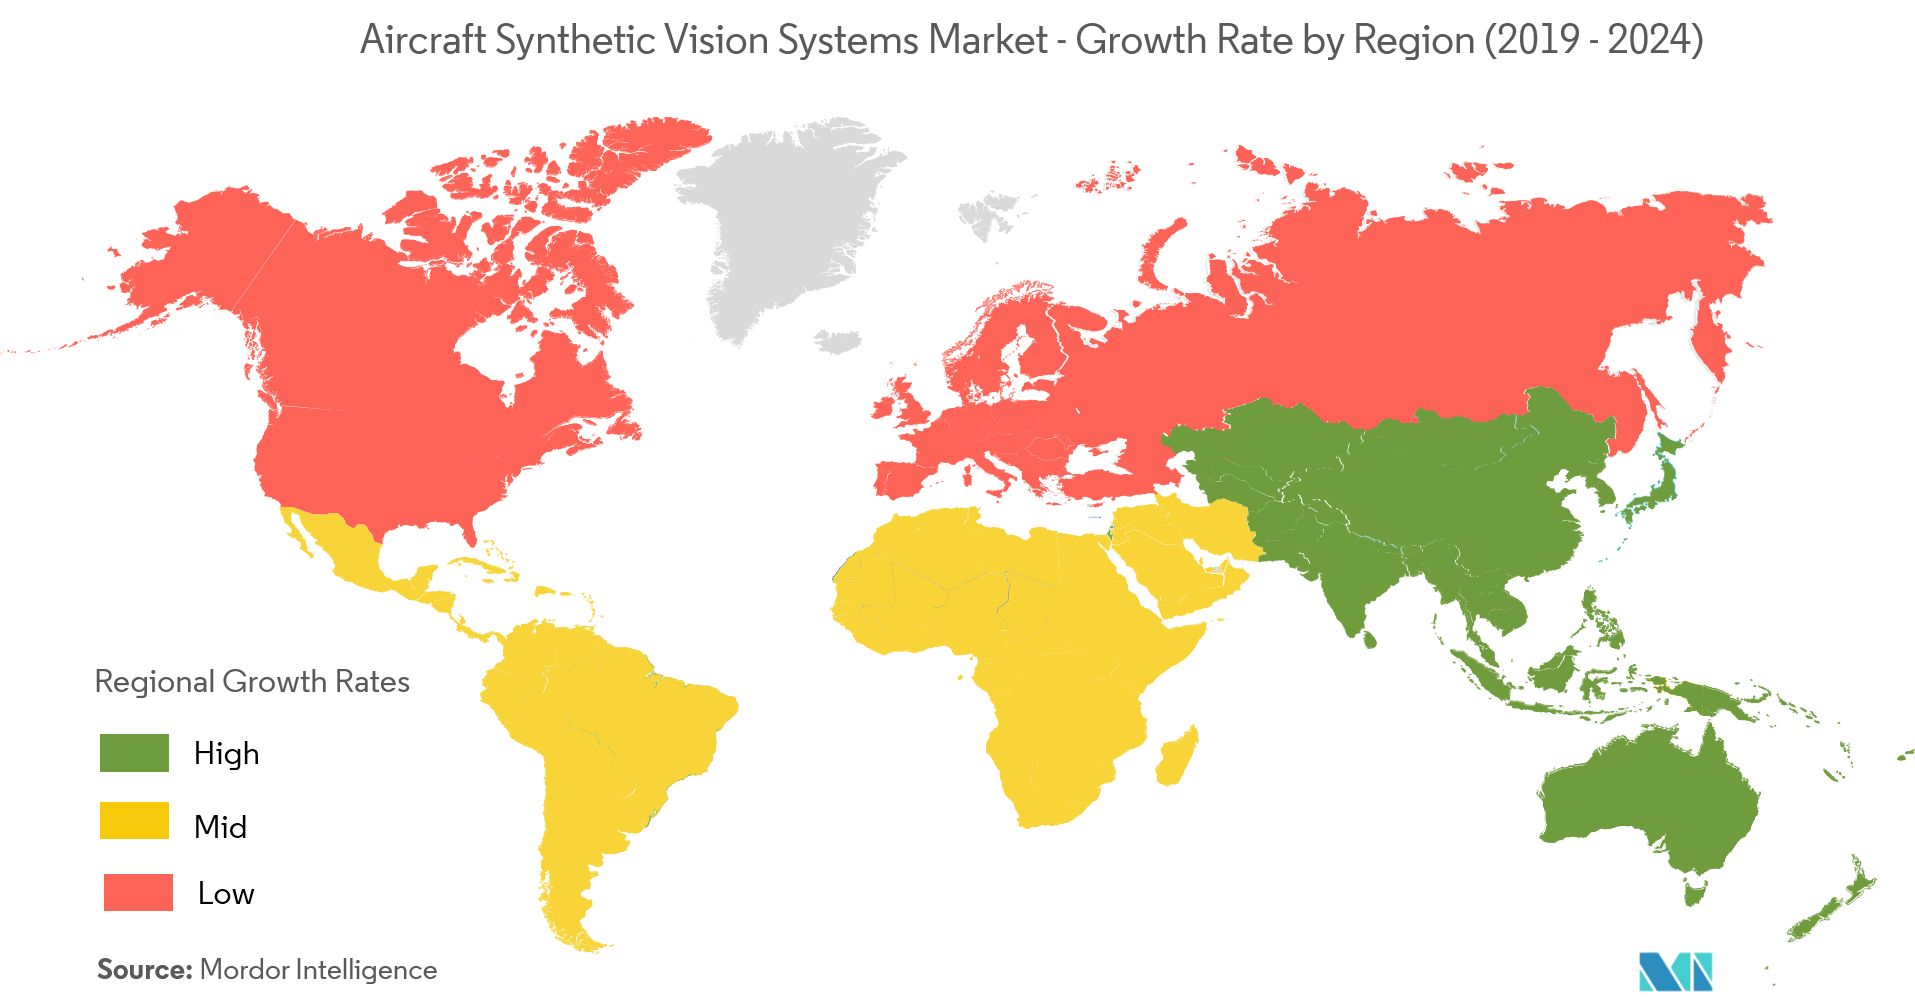 Aircraft Synthetic Vision Systems Market -Geography